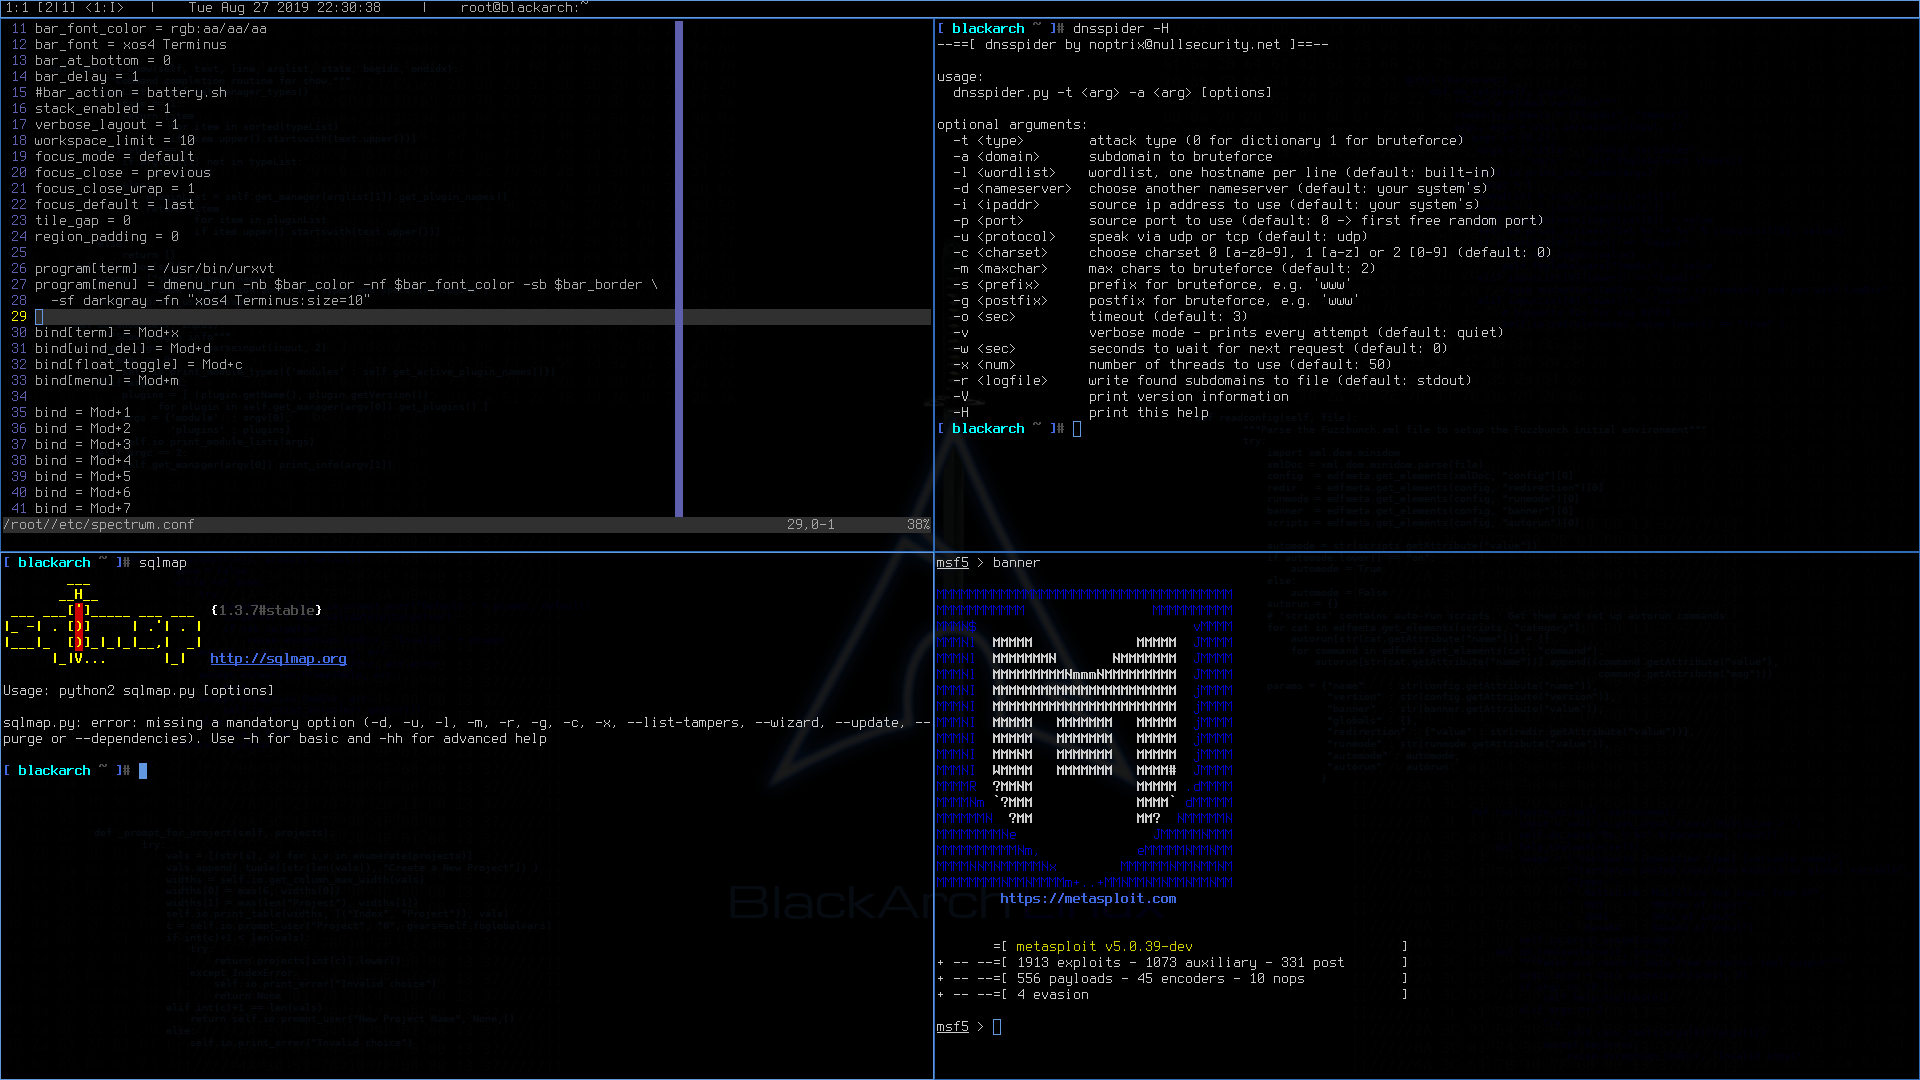 BlackArch Linux with spectrwm